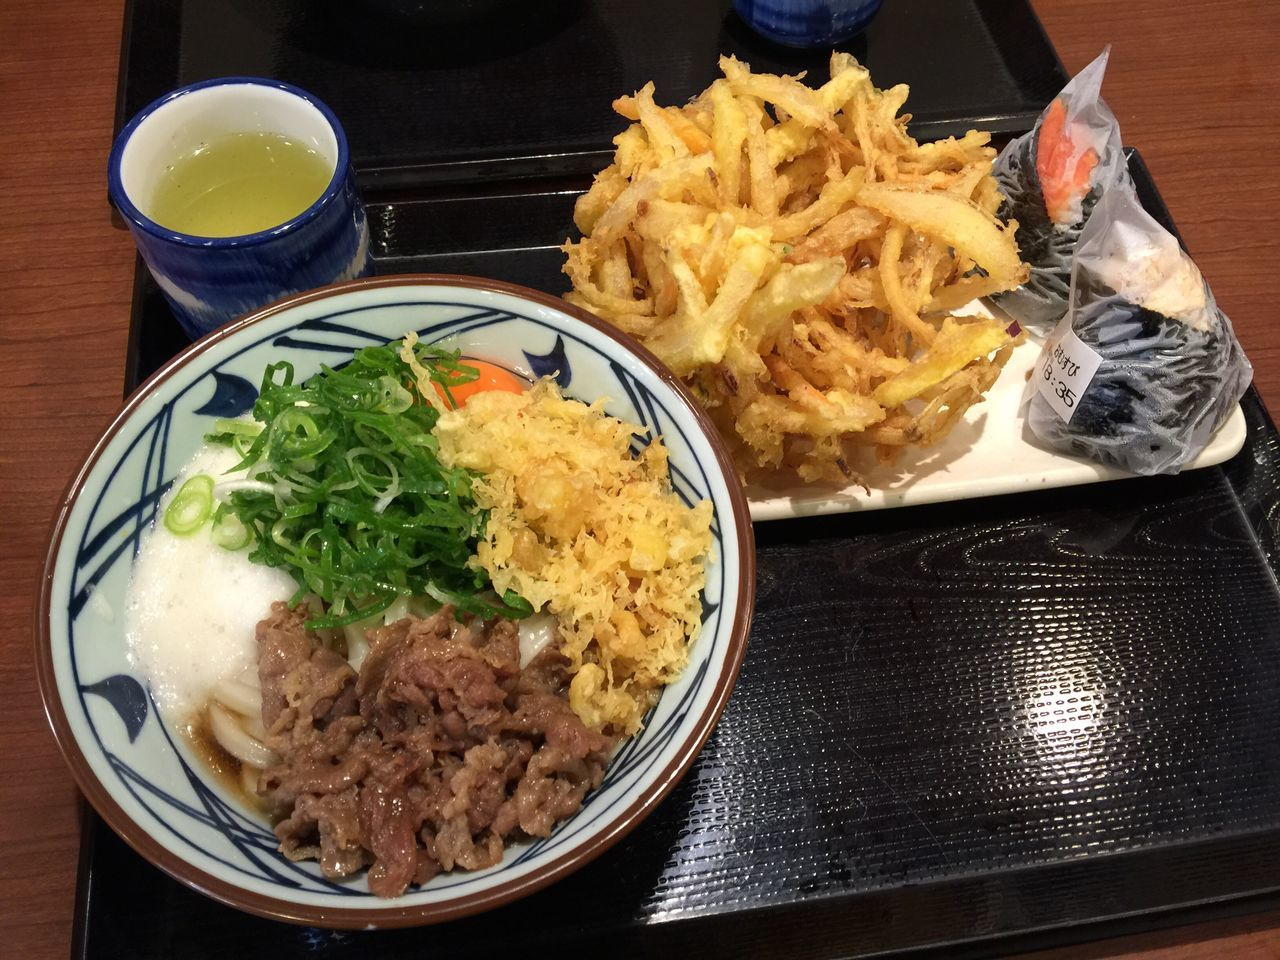 Udon Marugame Marugameudon うどん 肉とろたまご